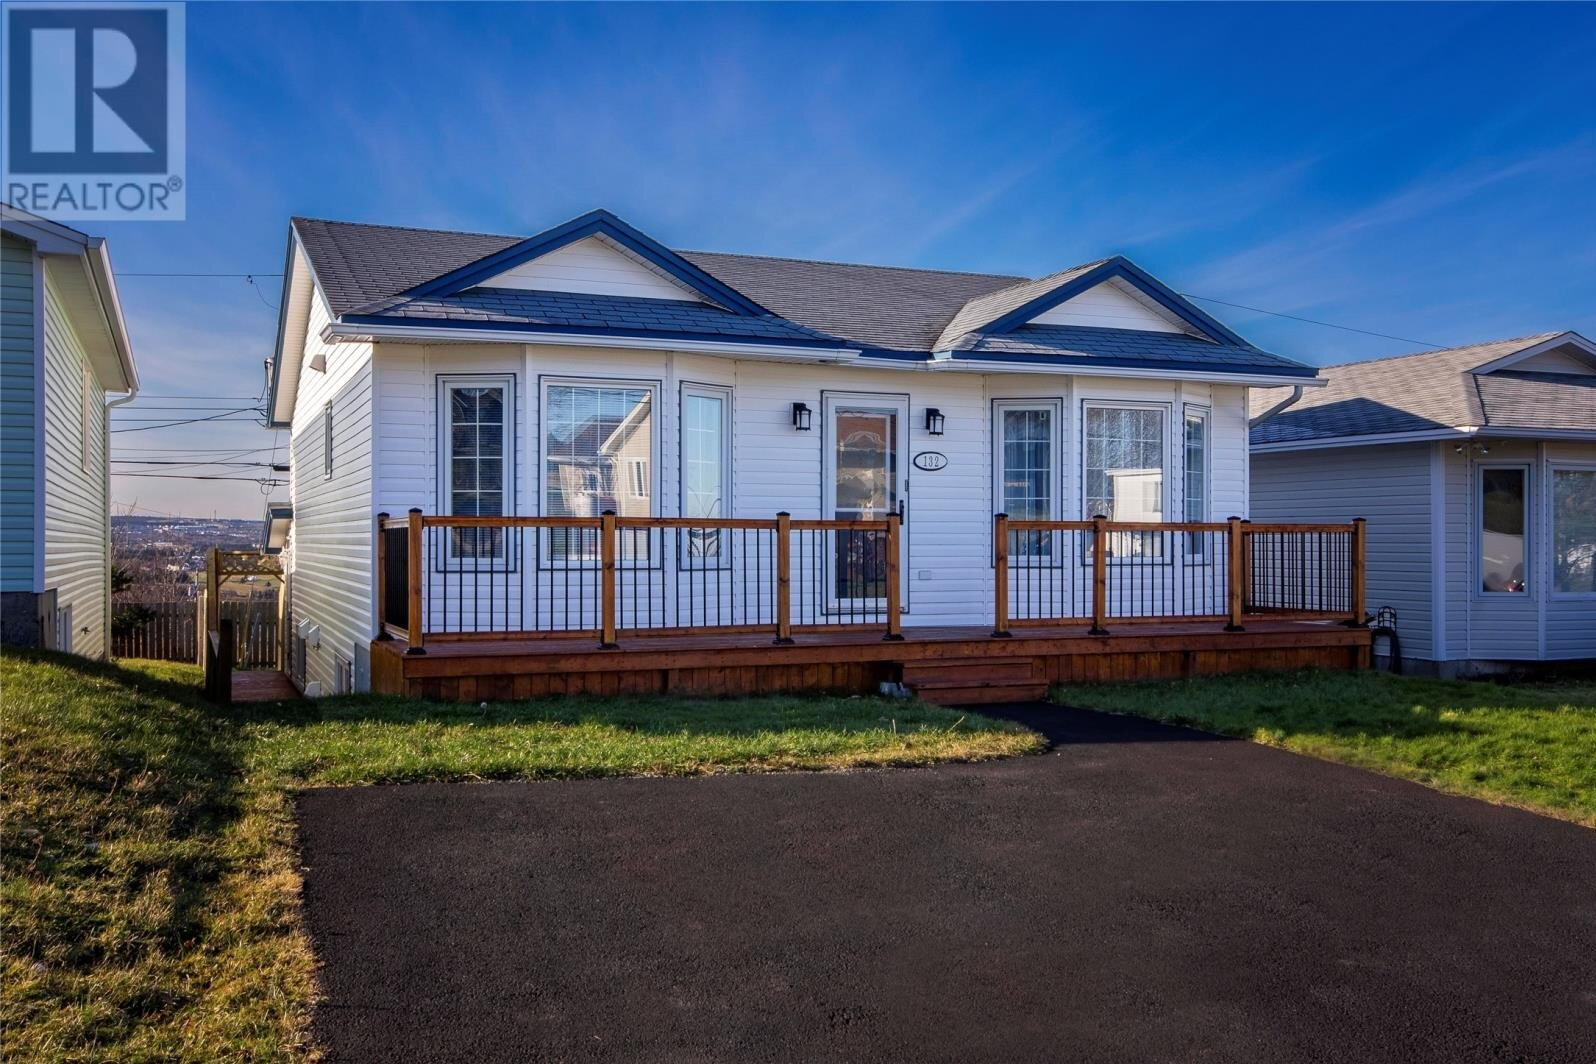 House for sale at 132 Old Petty Harbour Rd St. John's Newfoundland - MLS: 1223674